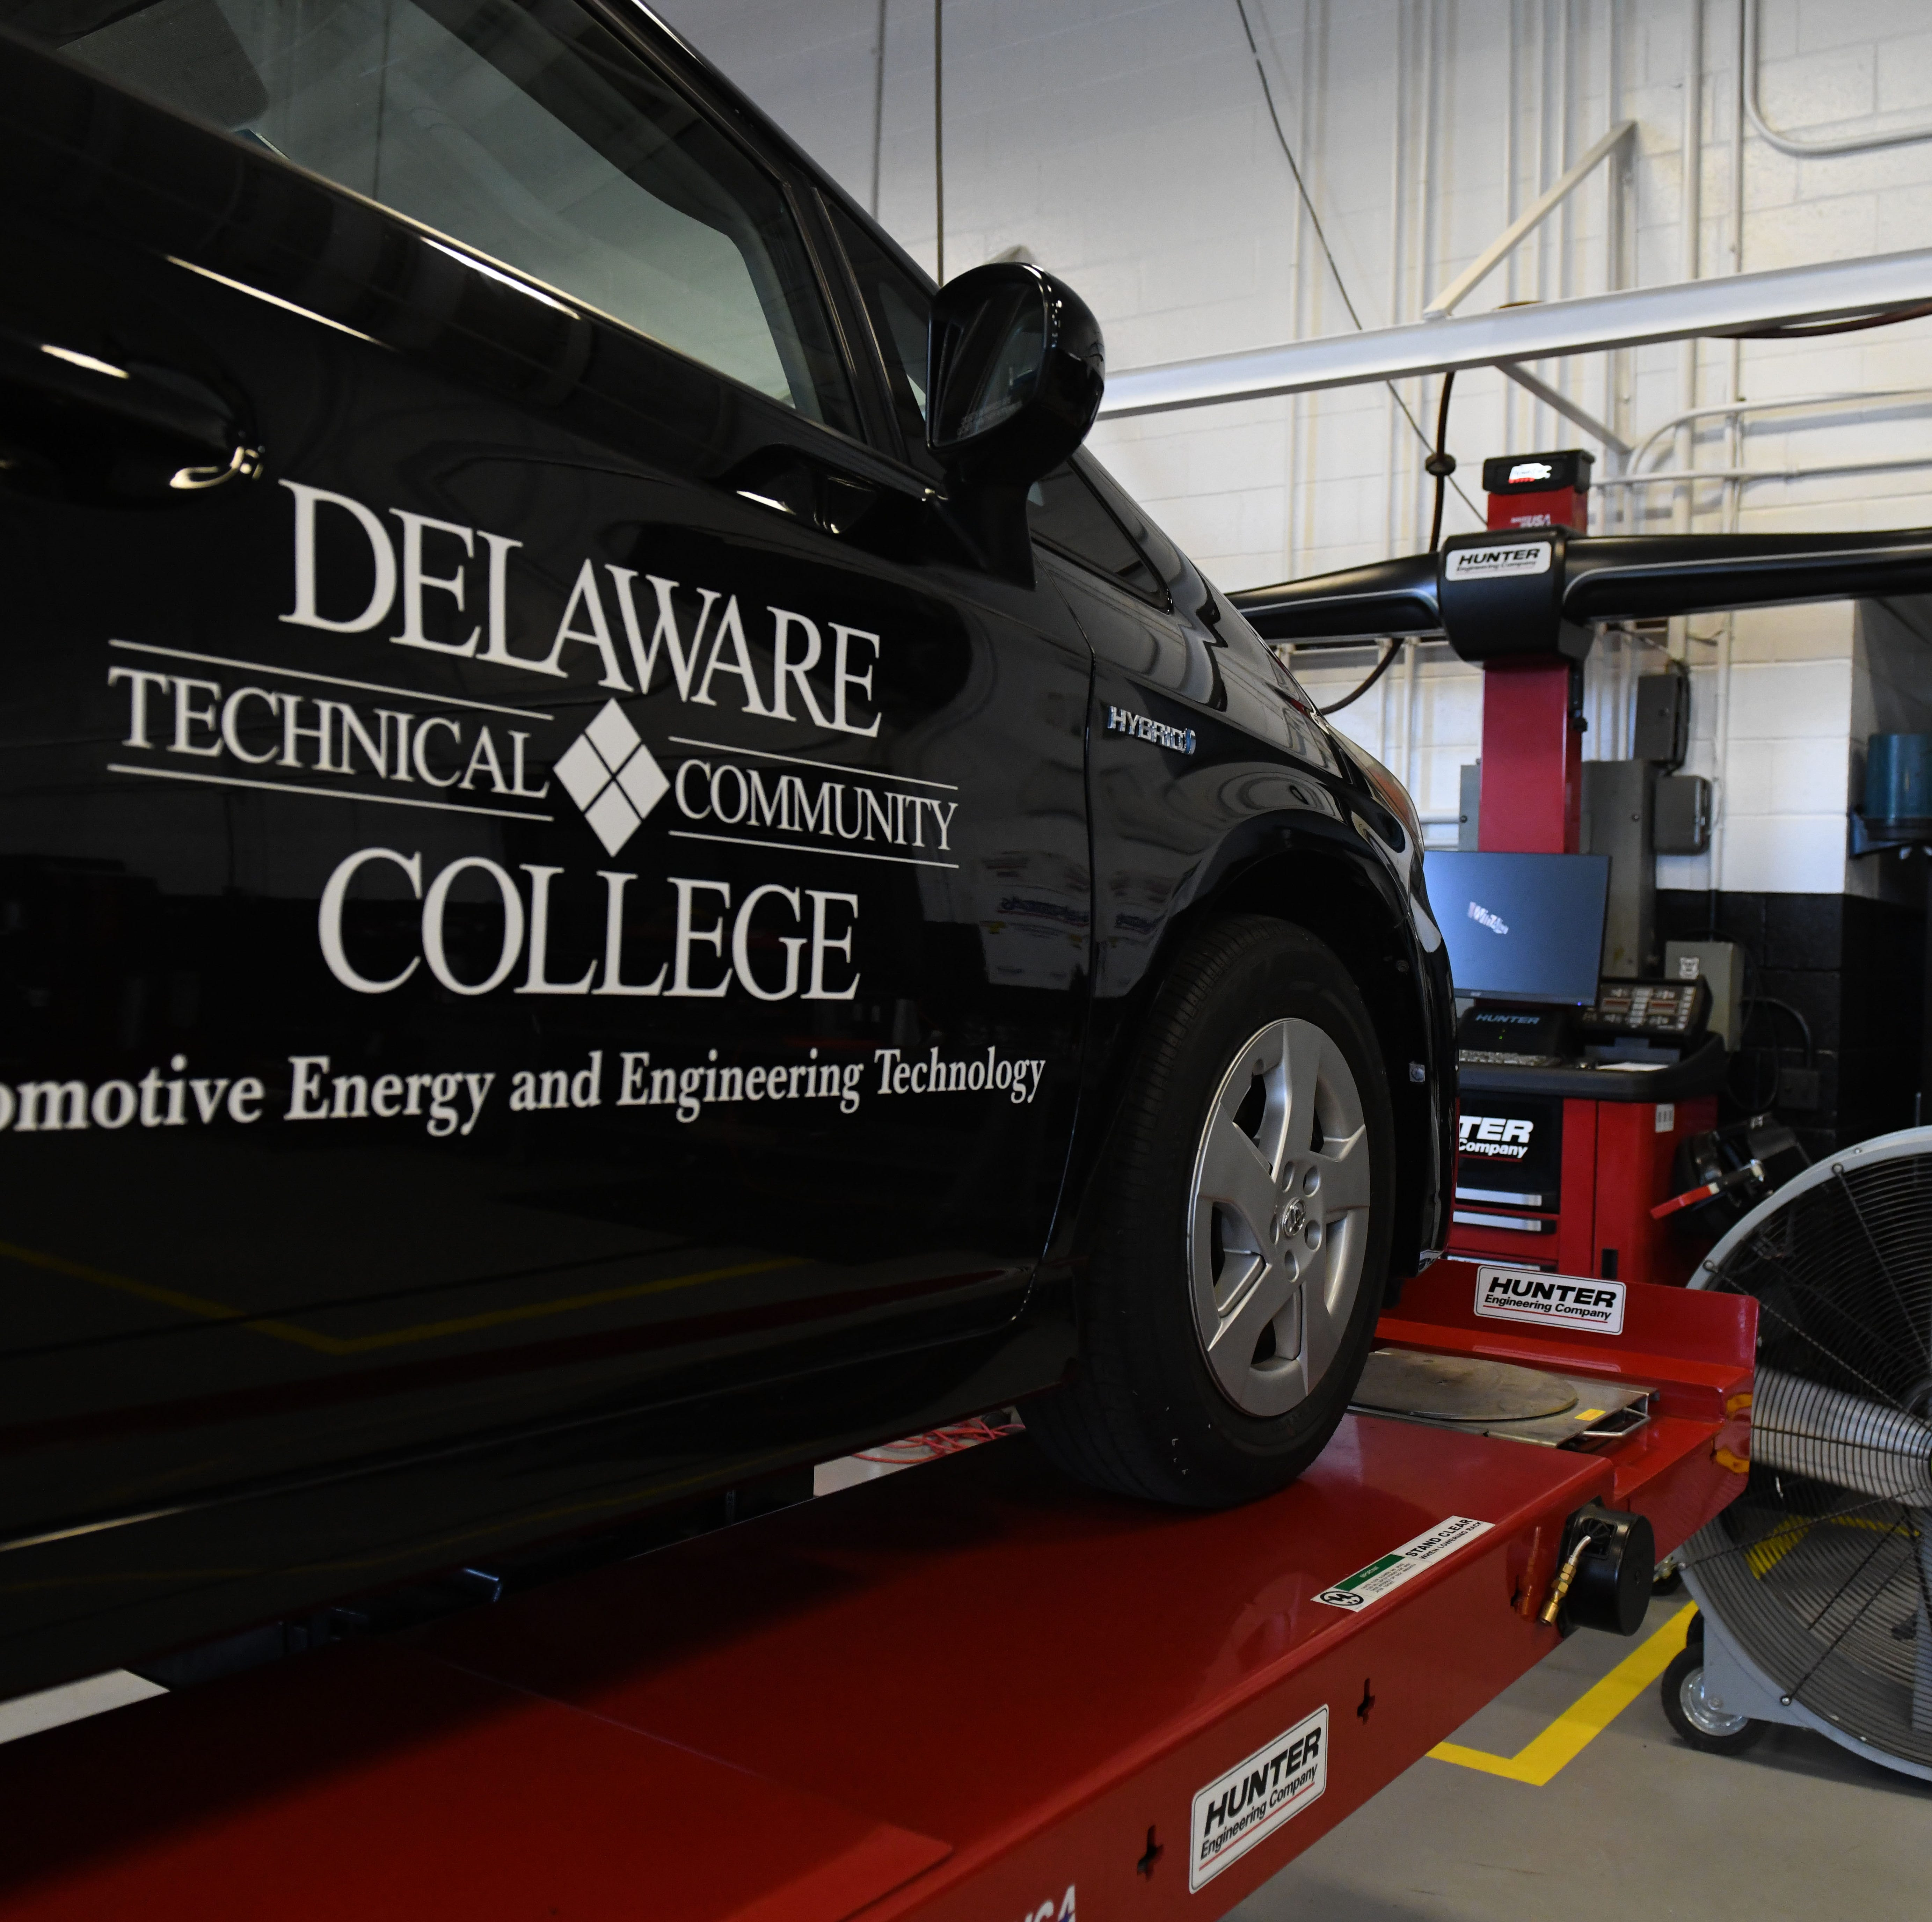 Delaware Technical Community College announces a $1.97 million grant to create the Automotive Center of Excellence at the Georgetown Campus on Friday, Aug. 17, 2018.